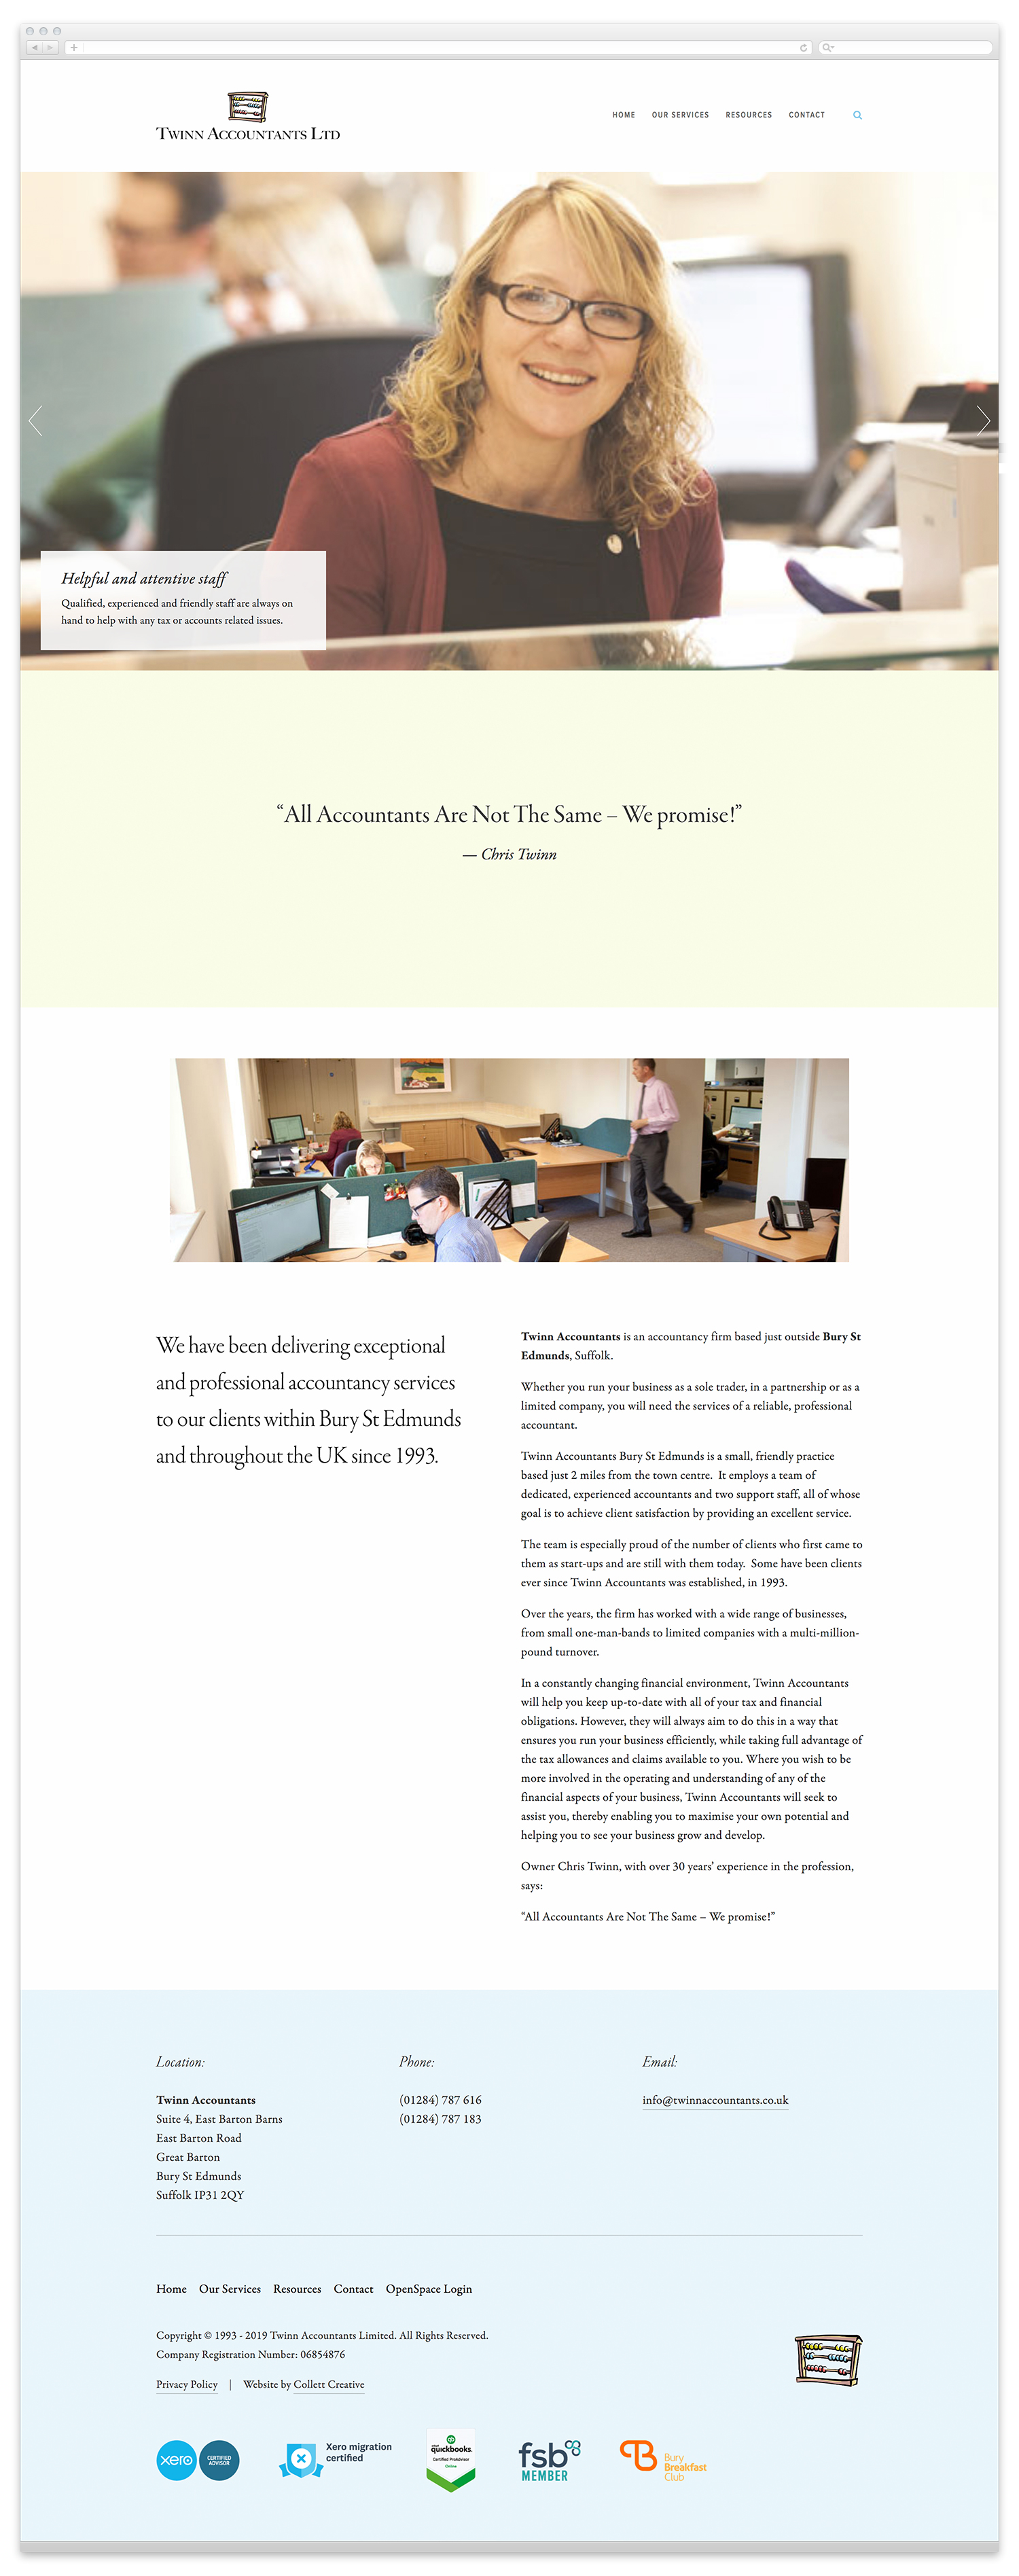 Image of the Twinn Accountants website homepage at time of launch.